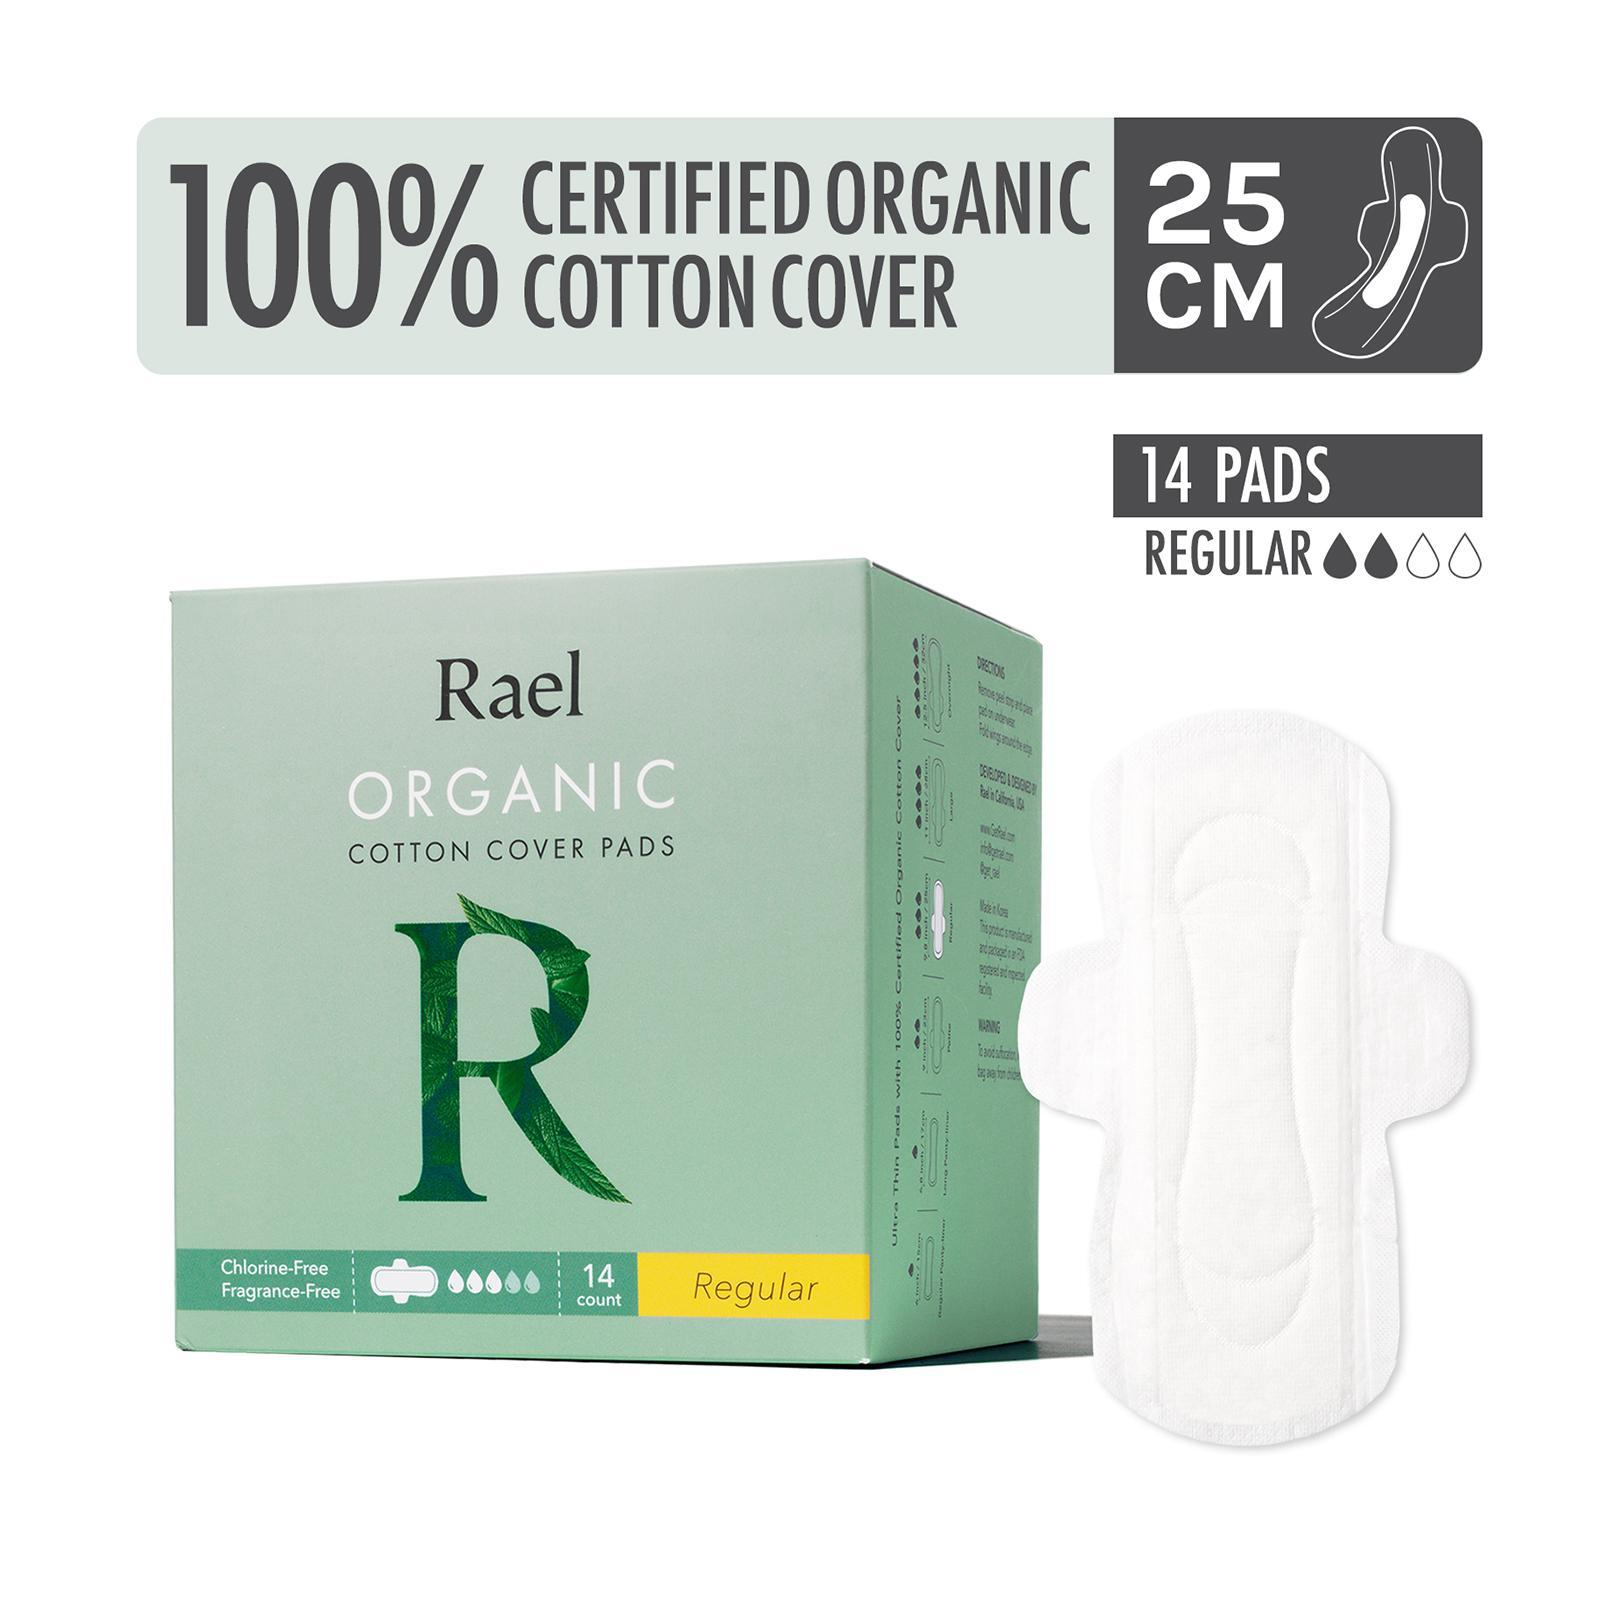 Rael Sanitary Pads with Certified Organic Cotton Cover - Regular - By Corlison